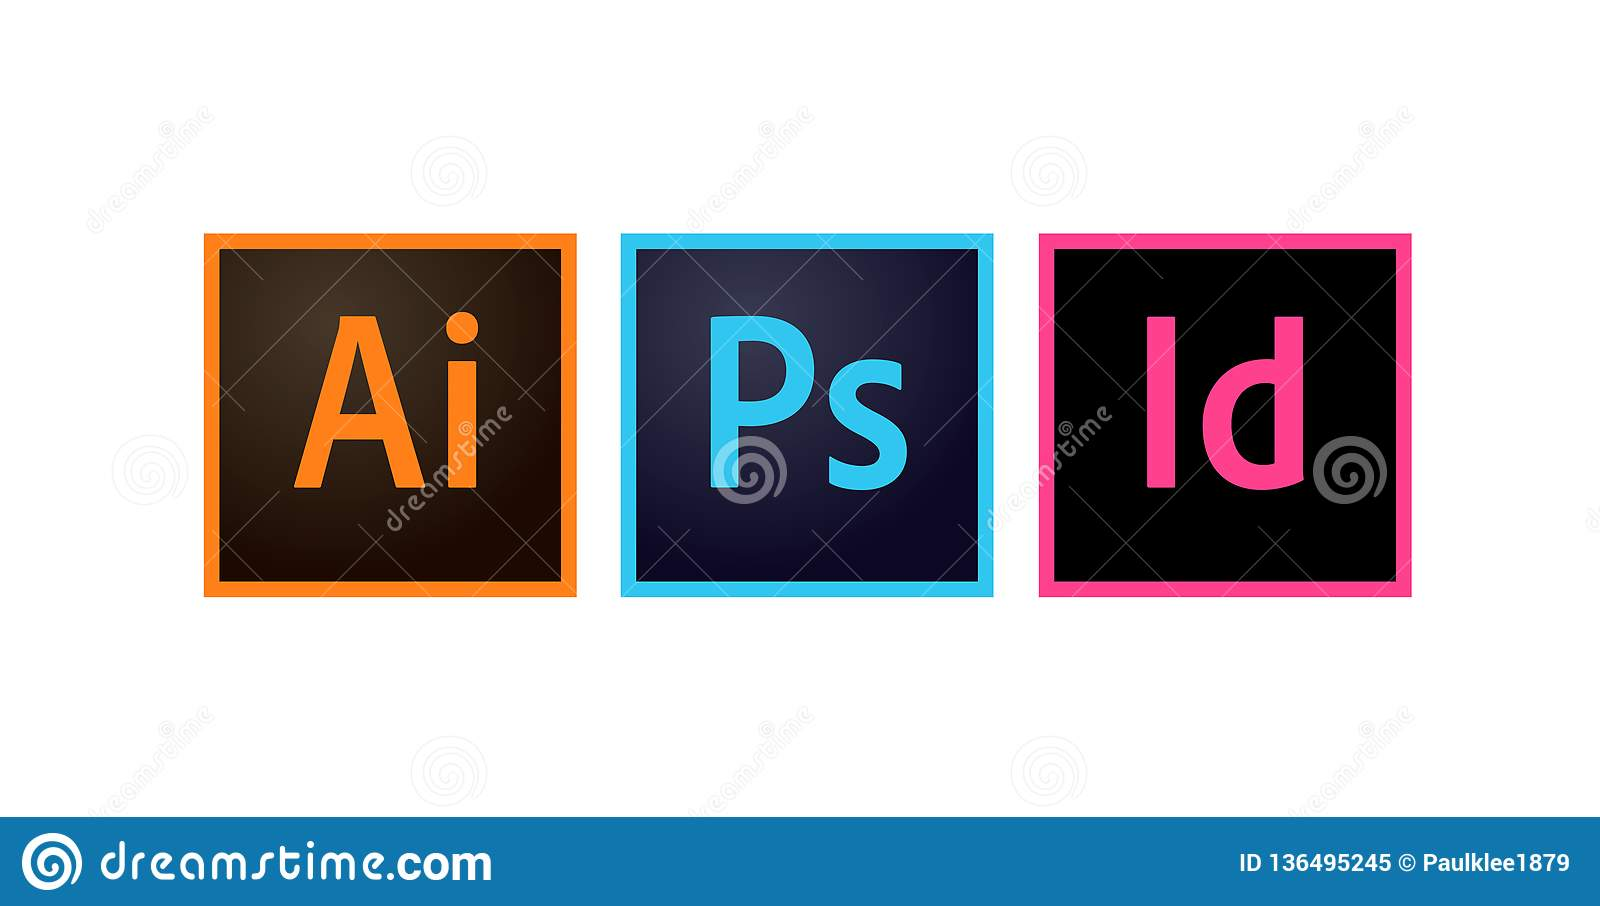 Adobe Icons Photoshop, Illustrator And Indesign Editorial Vector